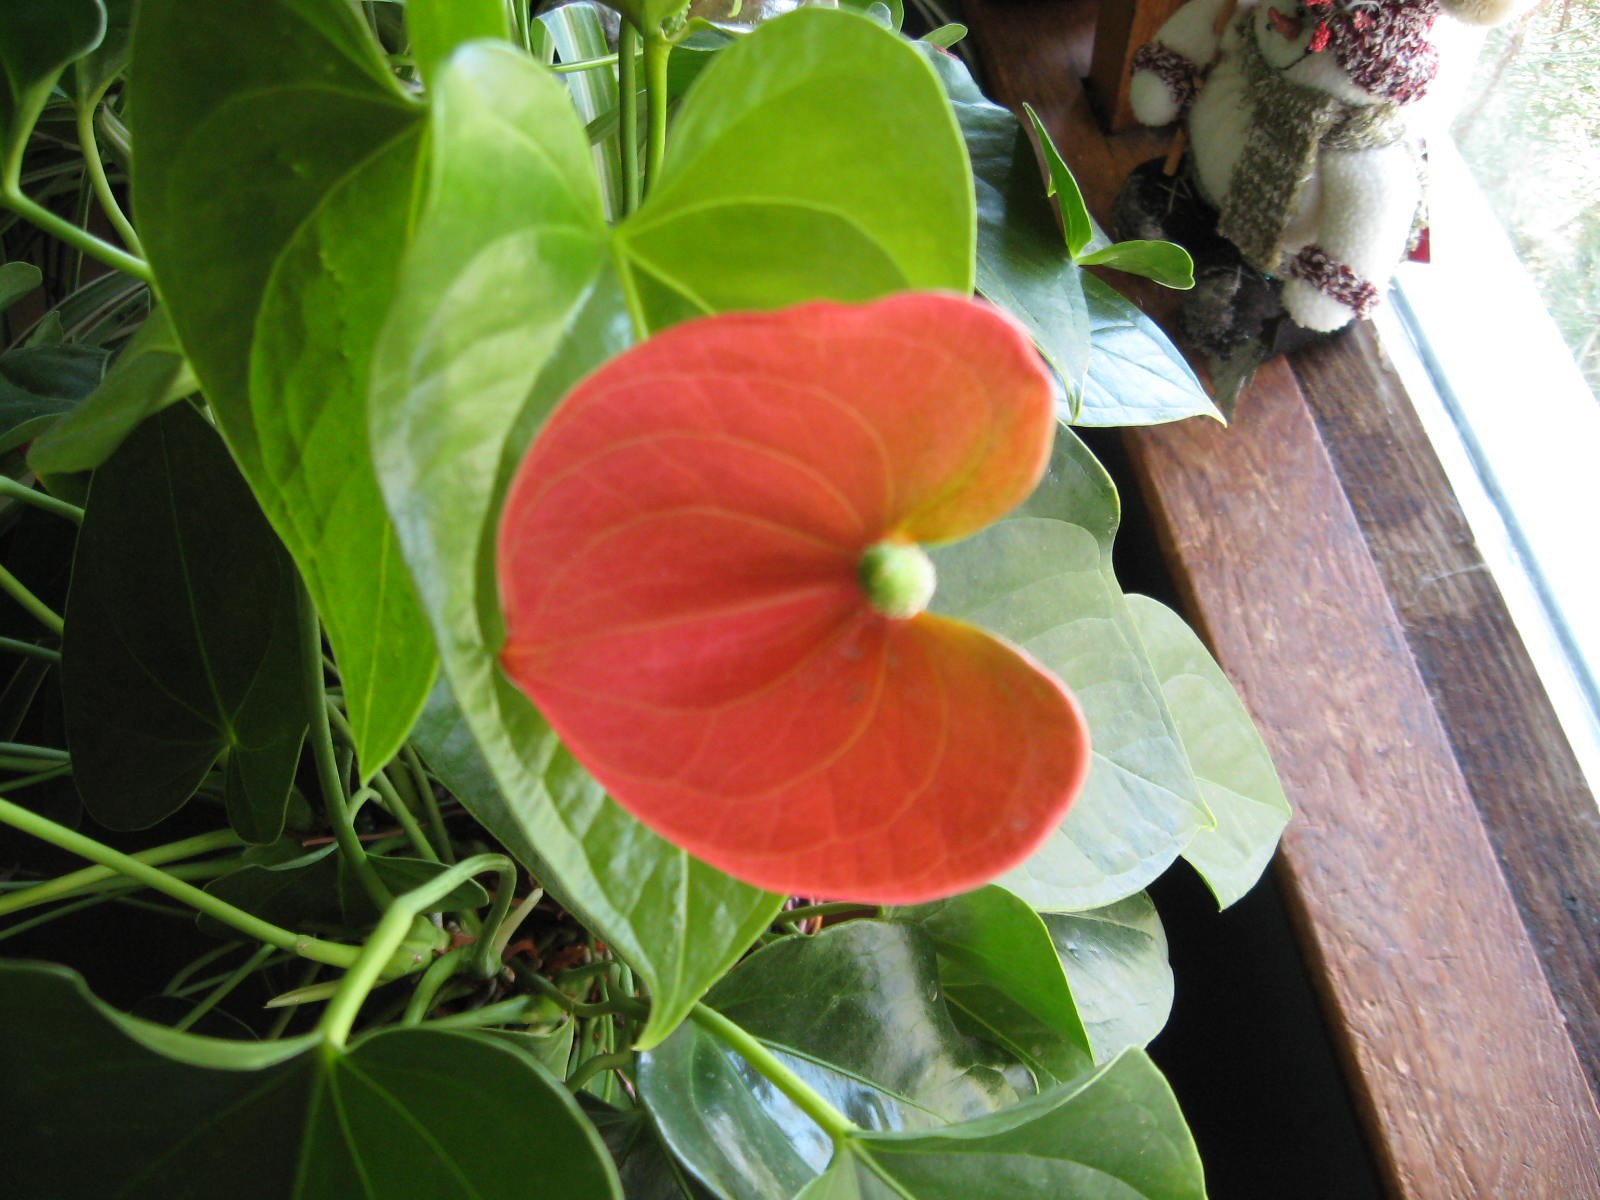 Proper care for an anthurium flamingo flower anthurium plant flamingo lily bloom anthurium andraeanum flamingo flower izmirmasajfo